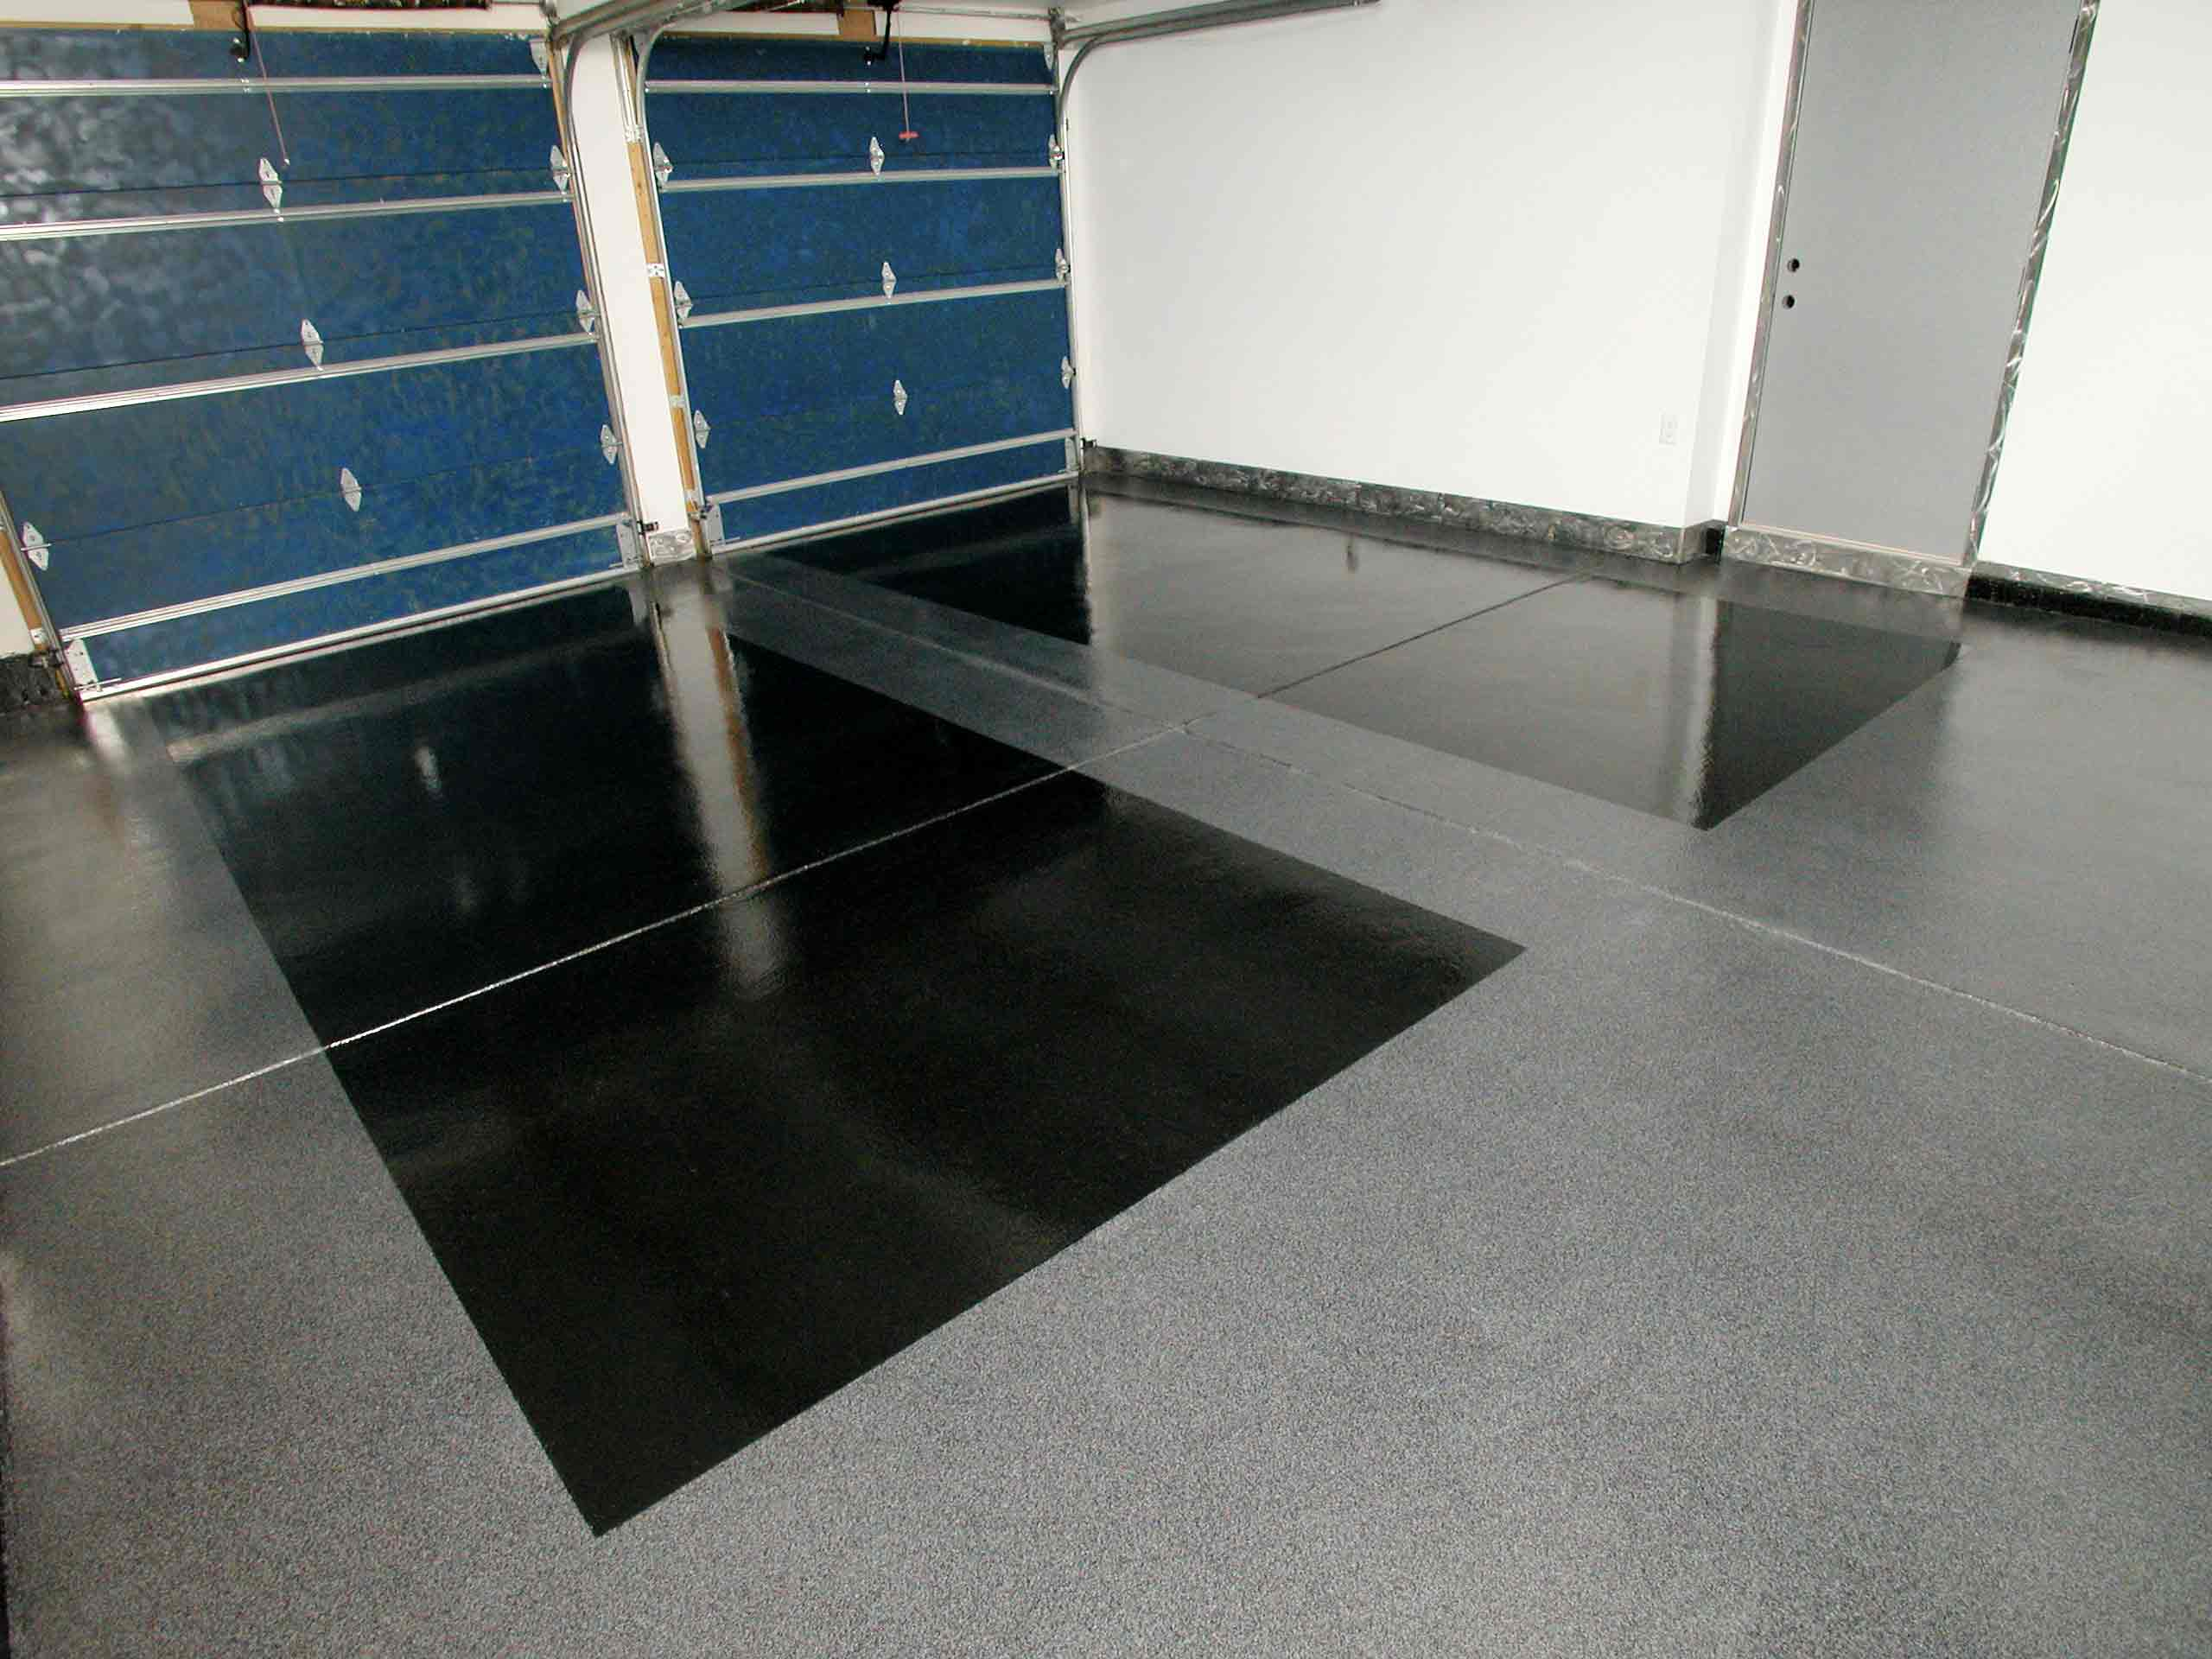 Painting Concrete Floors | Painting Concrete Floors | Best Guide ...